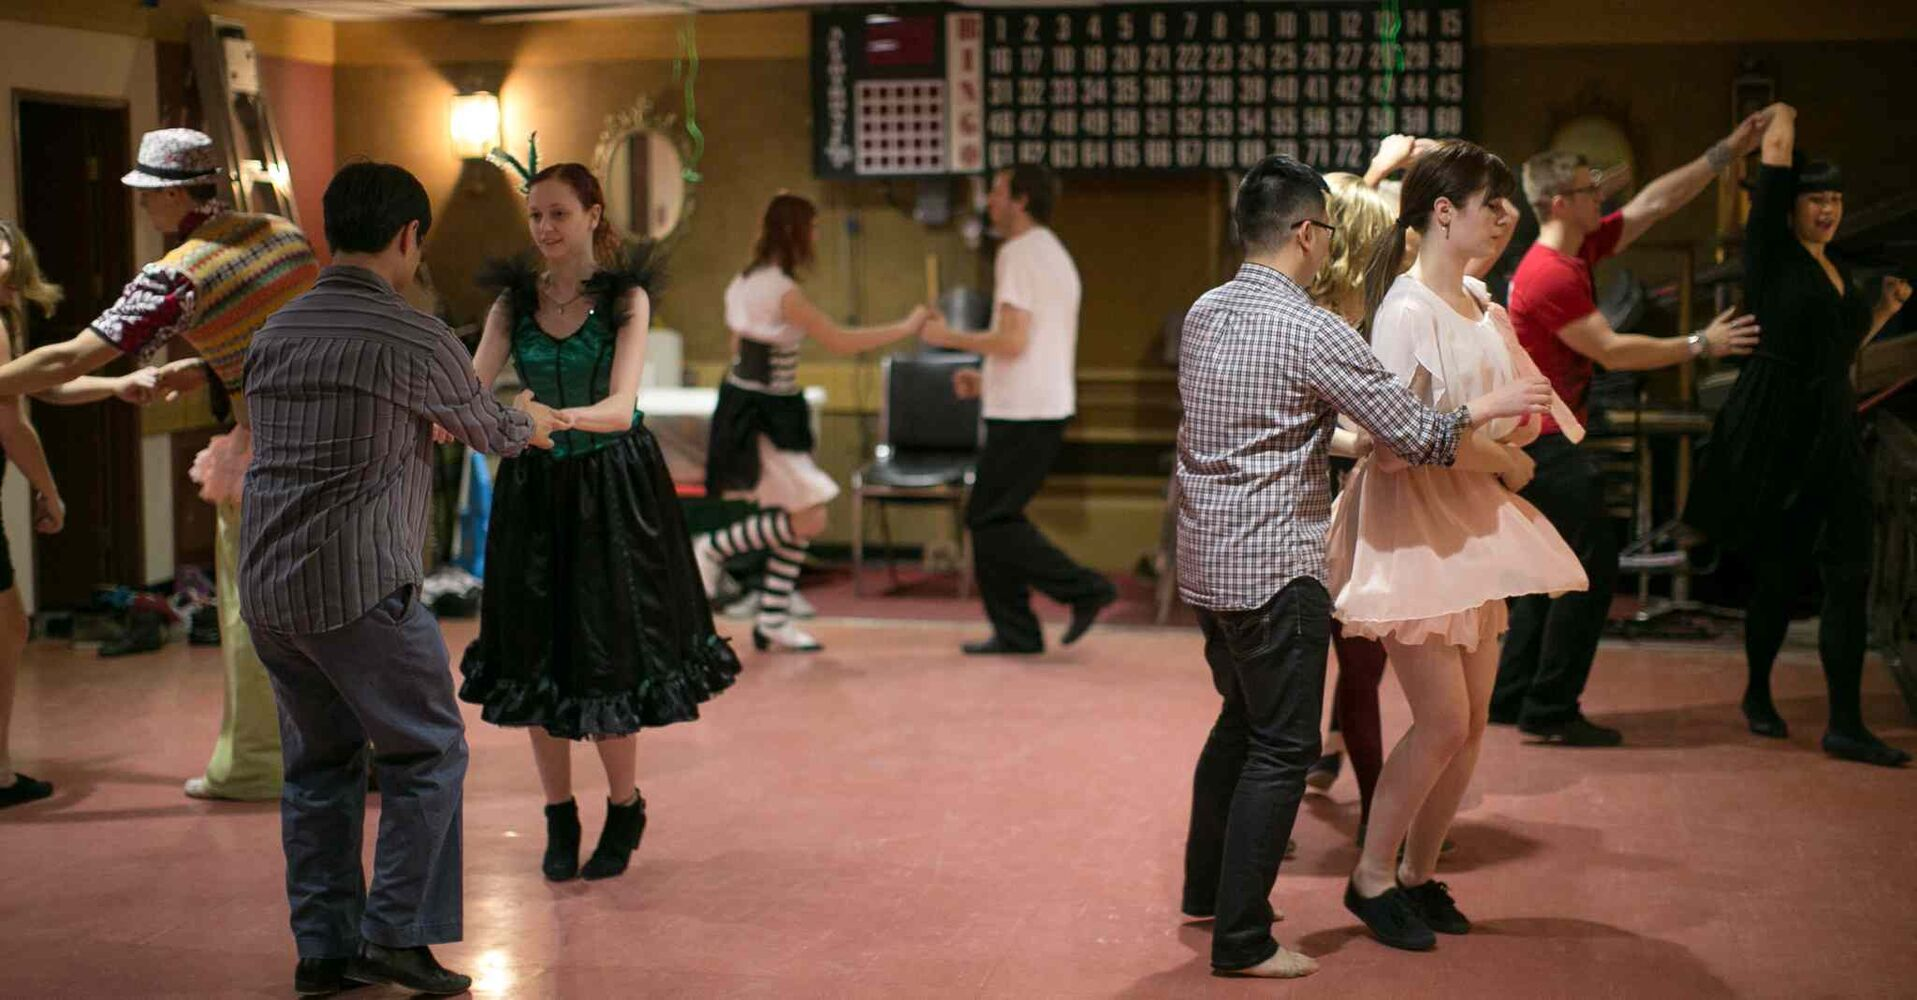 Young dancers cut a rug in the basement of the Winnipeg South Osborne Branch 252 Legion. (Melissa Tait / Winnipeg Free Press)